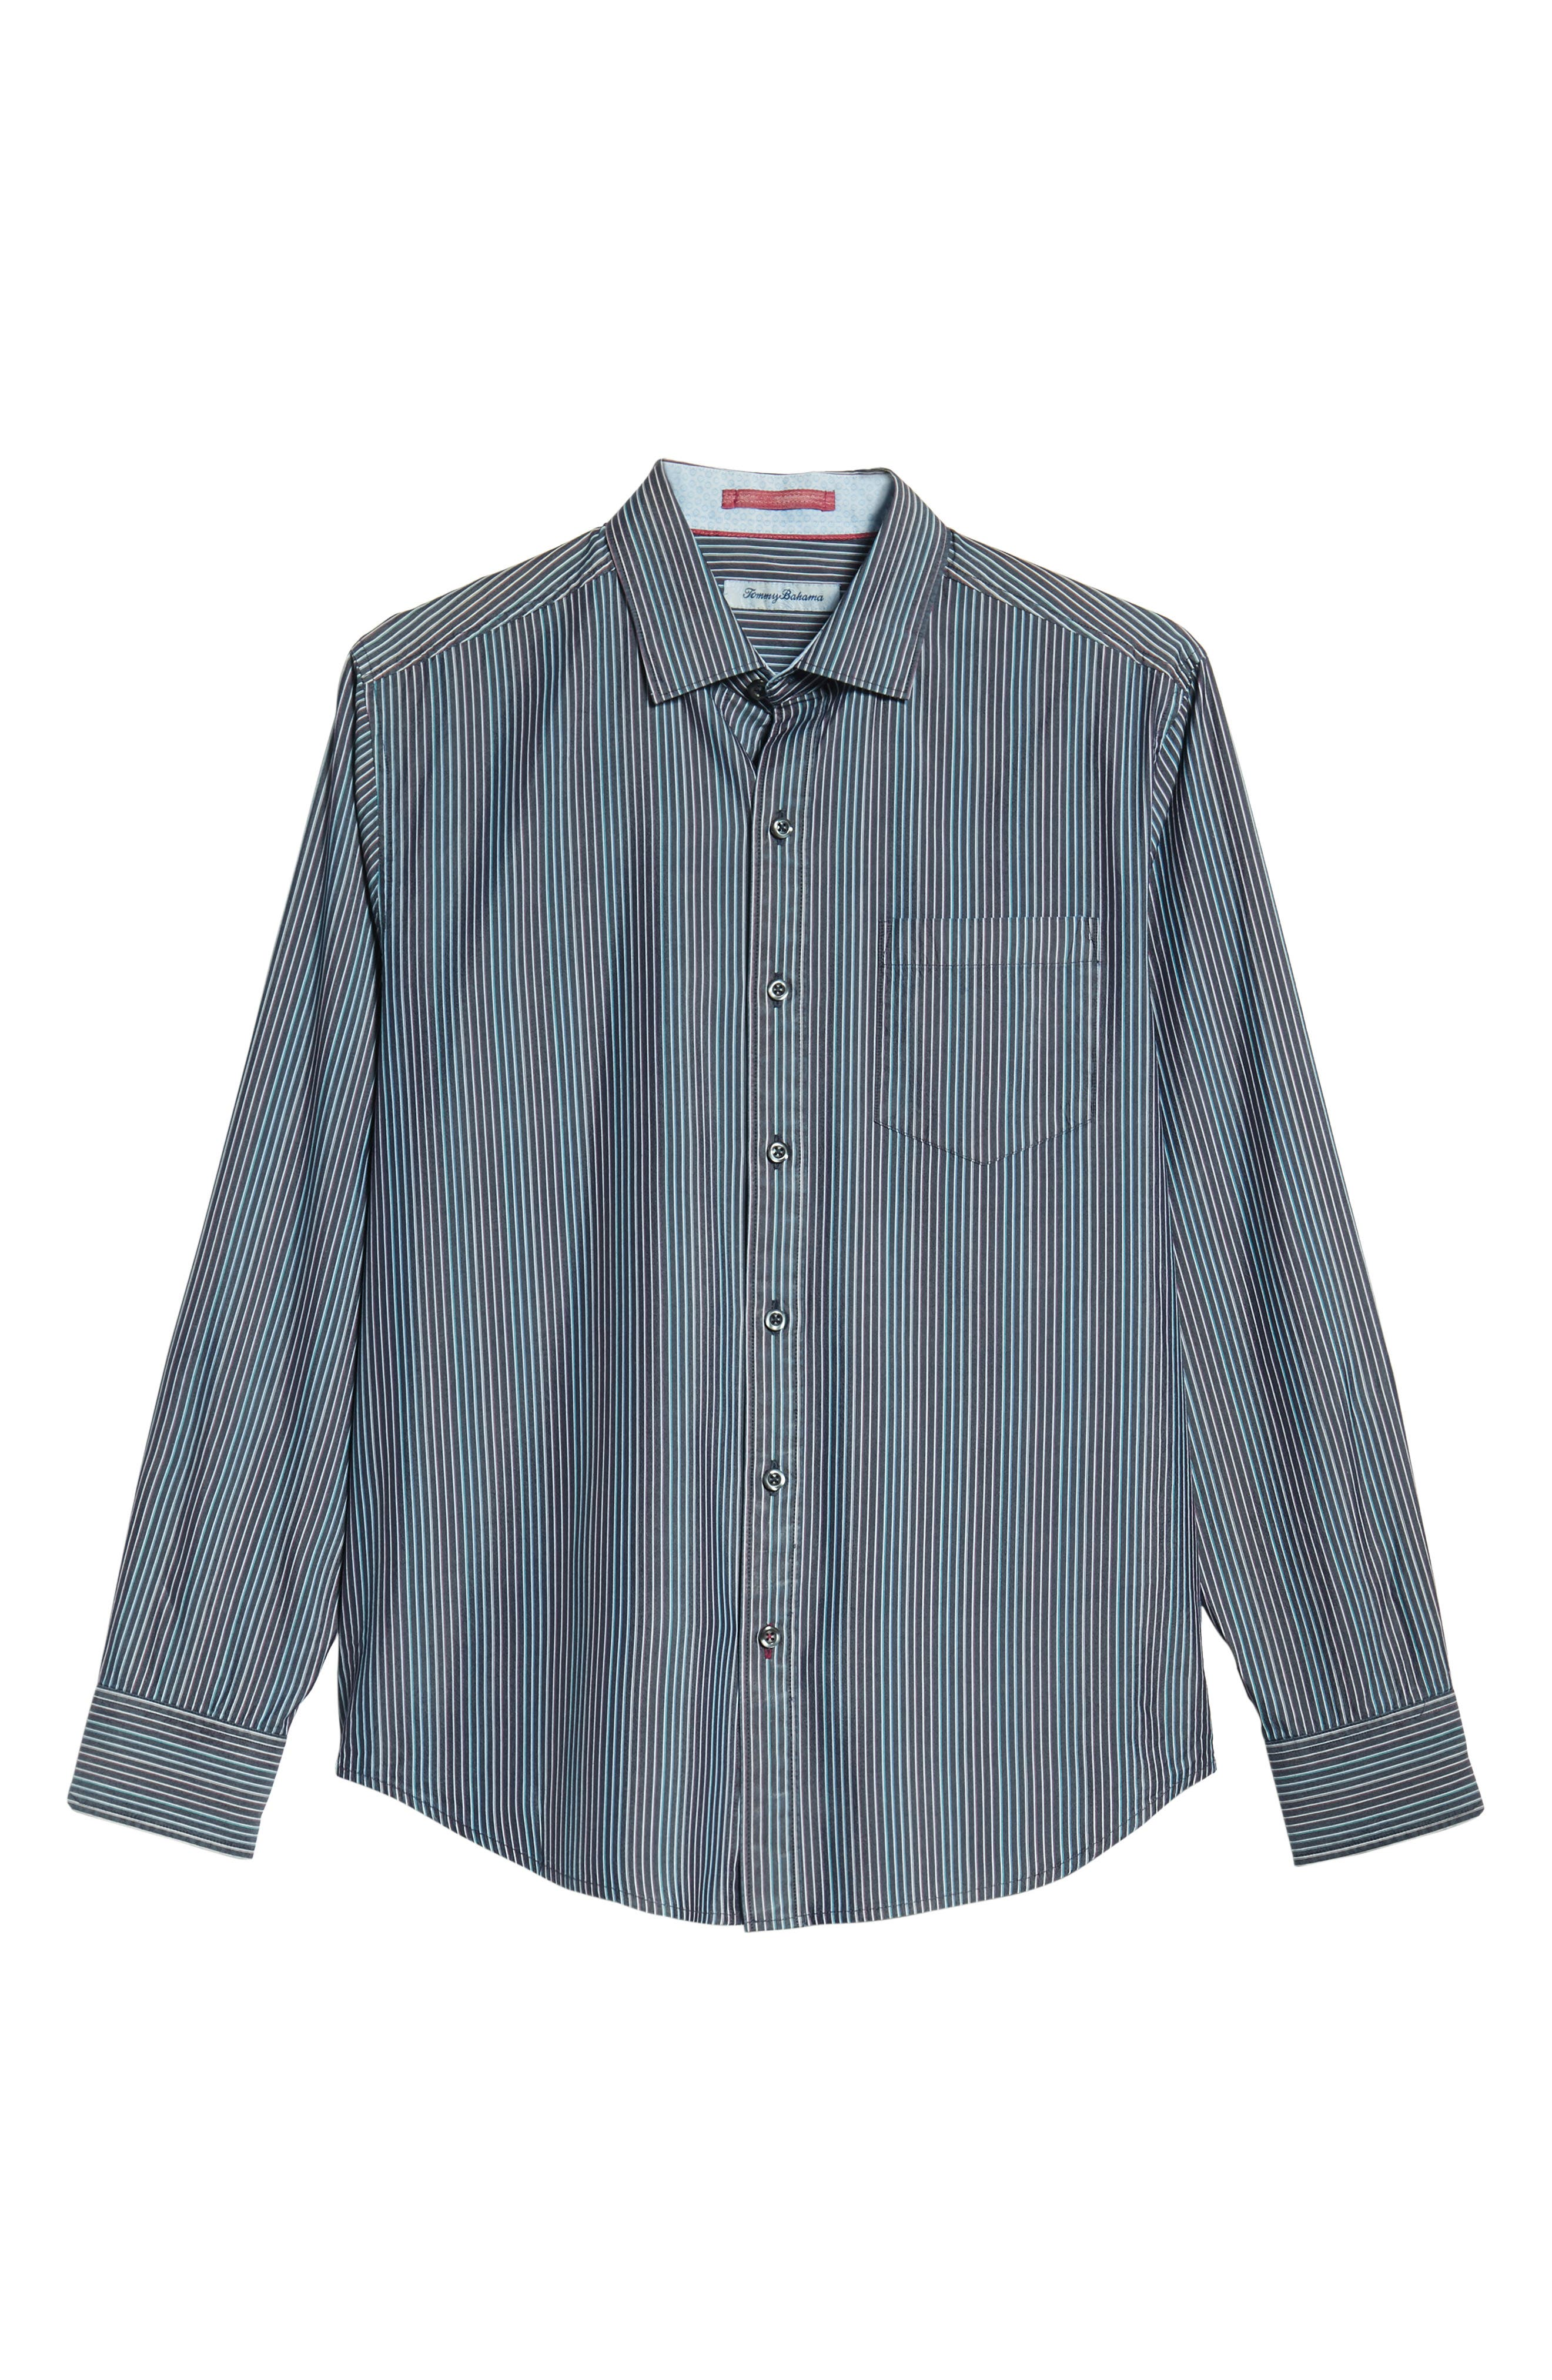 TOMMY BAHAMA,                             Paradiso Prism Stripe Sport Shirt,                             Alternate thumbnail 6, color,                             400